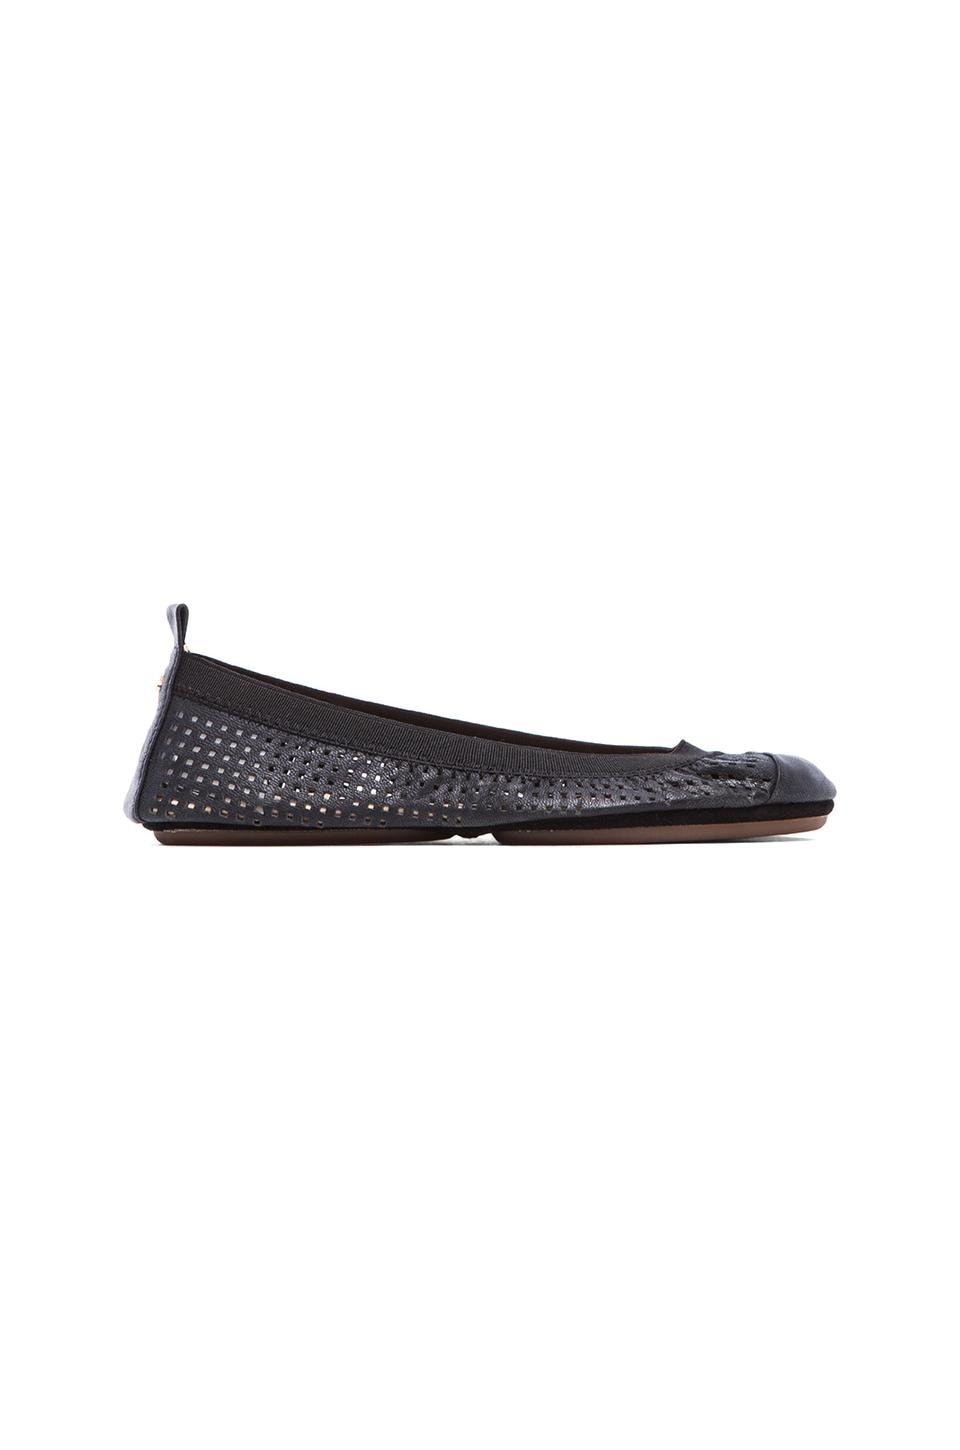 Yosi Samra Samantha Perforated Leather Flat in Black